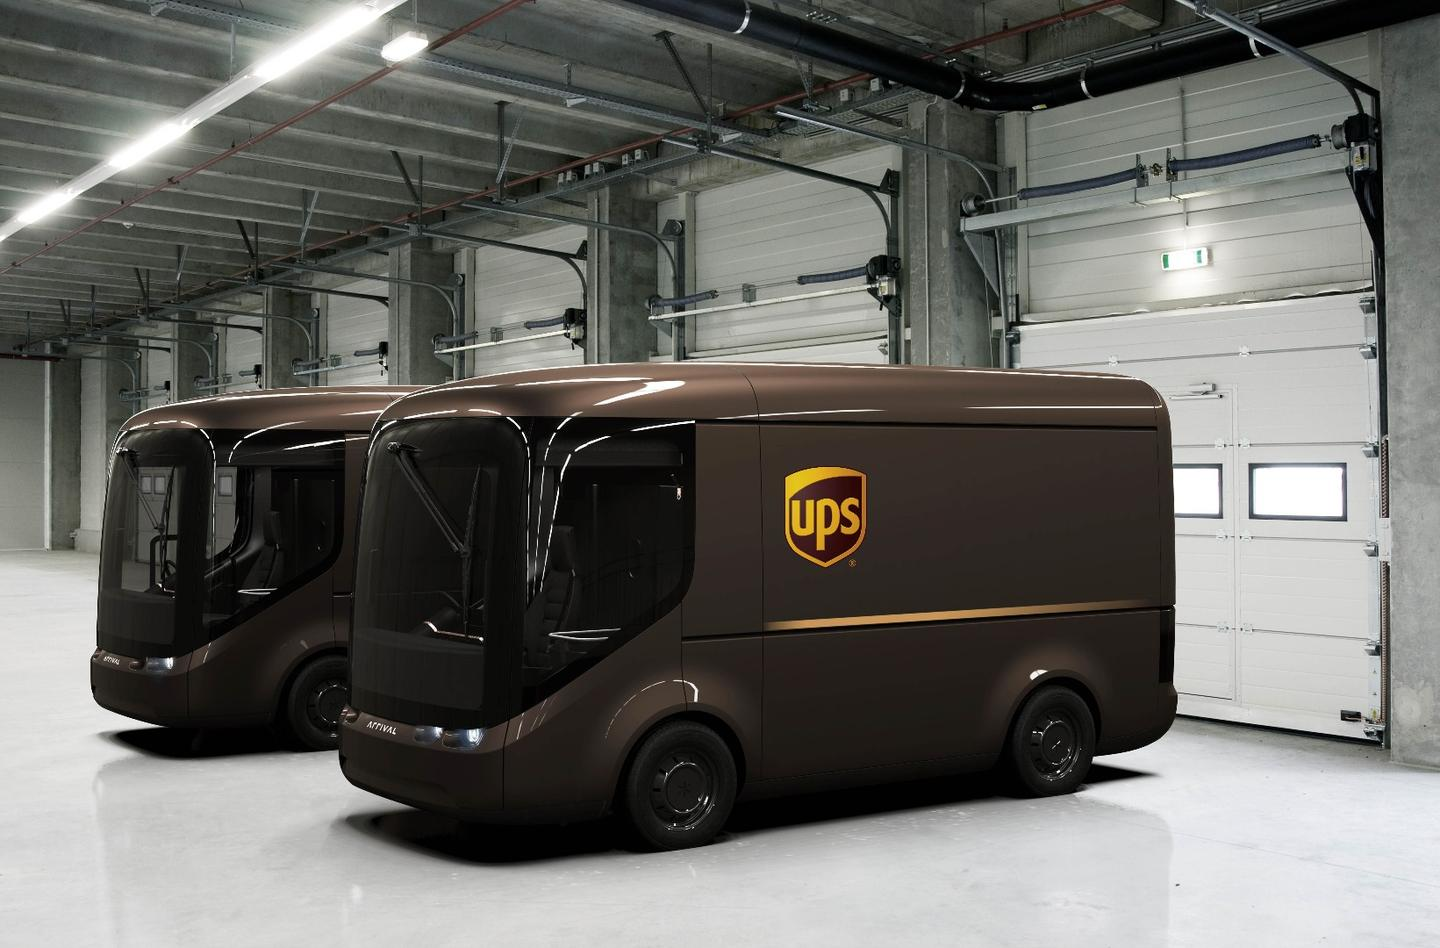 The modular electric delivery truck custom built by Arrival for UPS will have a range per charge of 150 miles